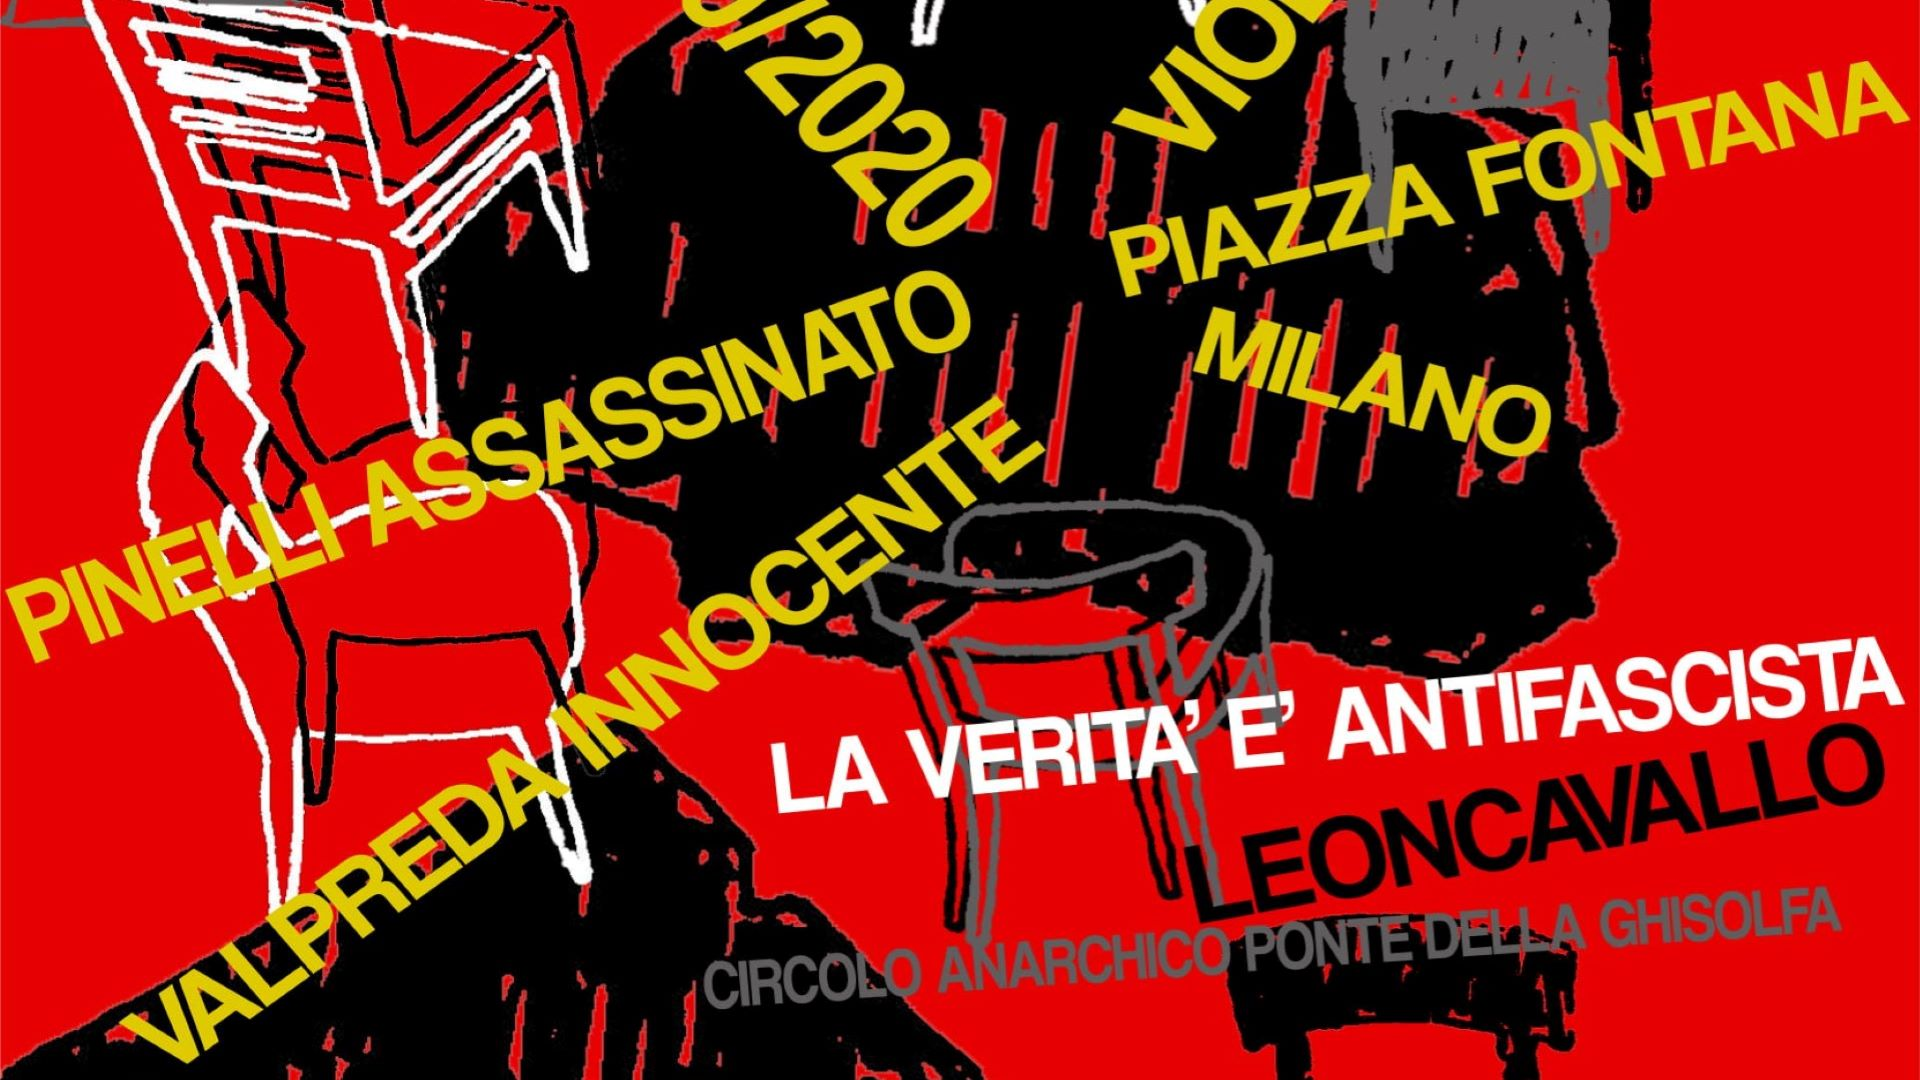 LA VERITÀ È ANTIFASCISTA